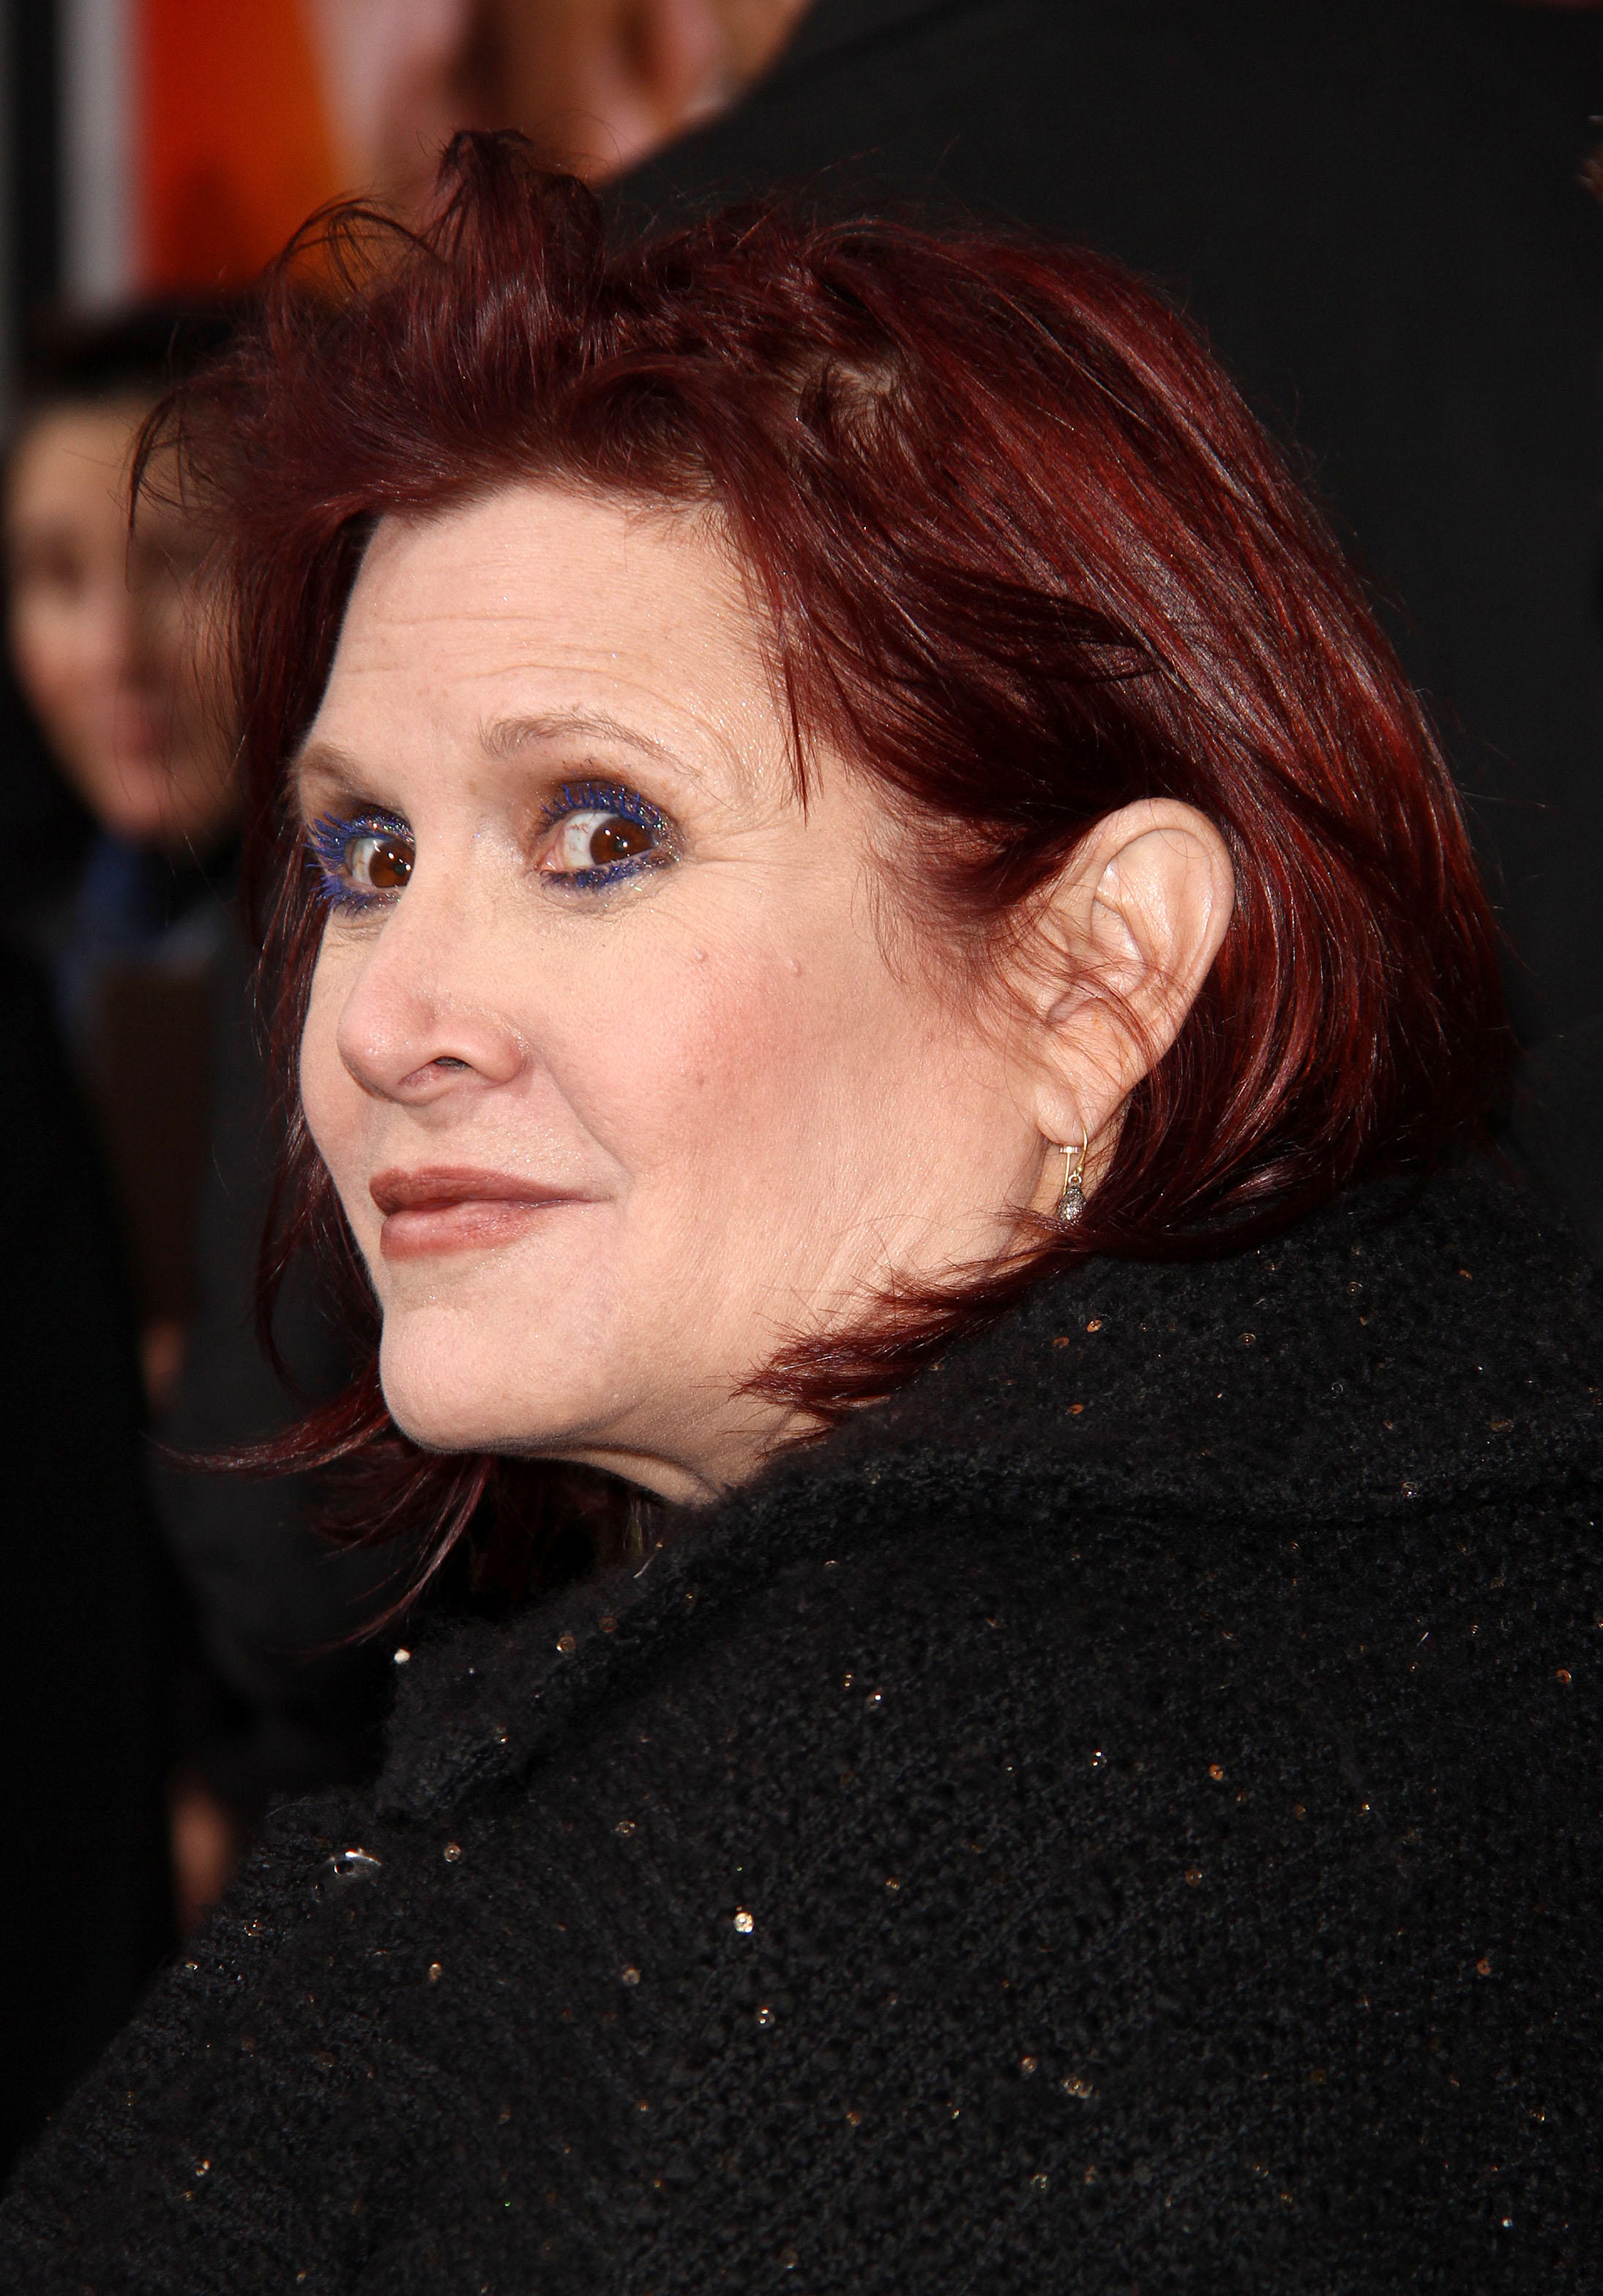 carrie-fisher-picture.jpg